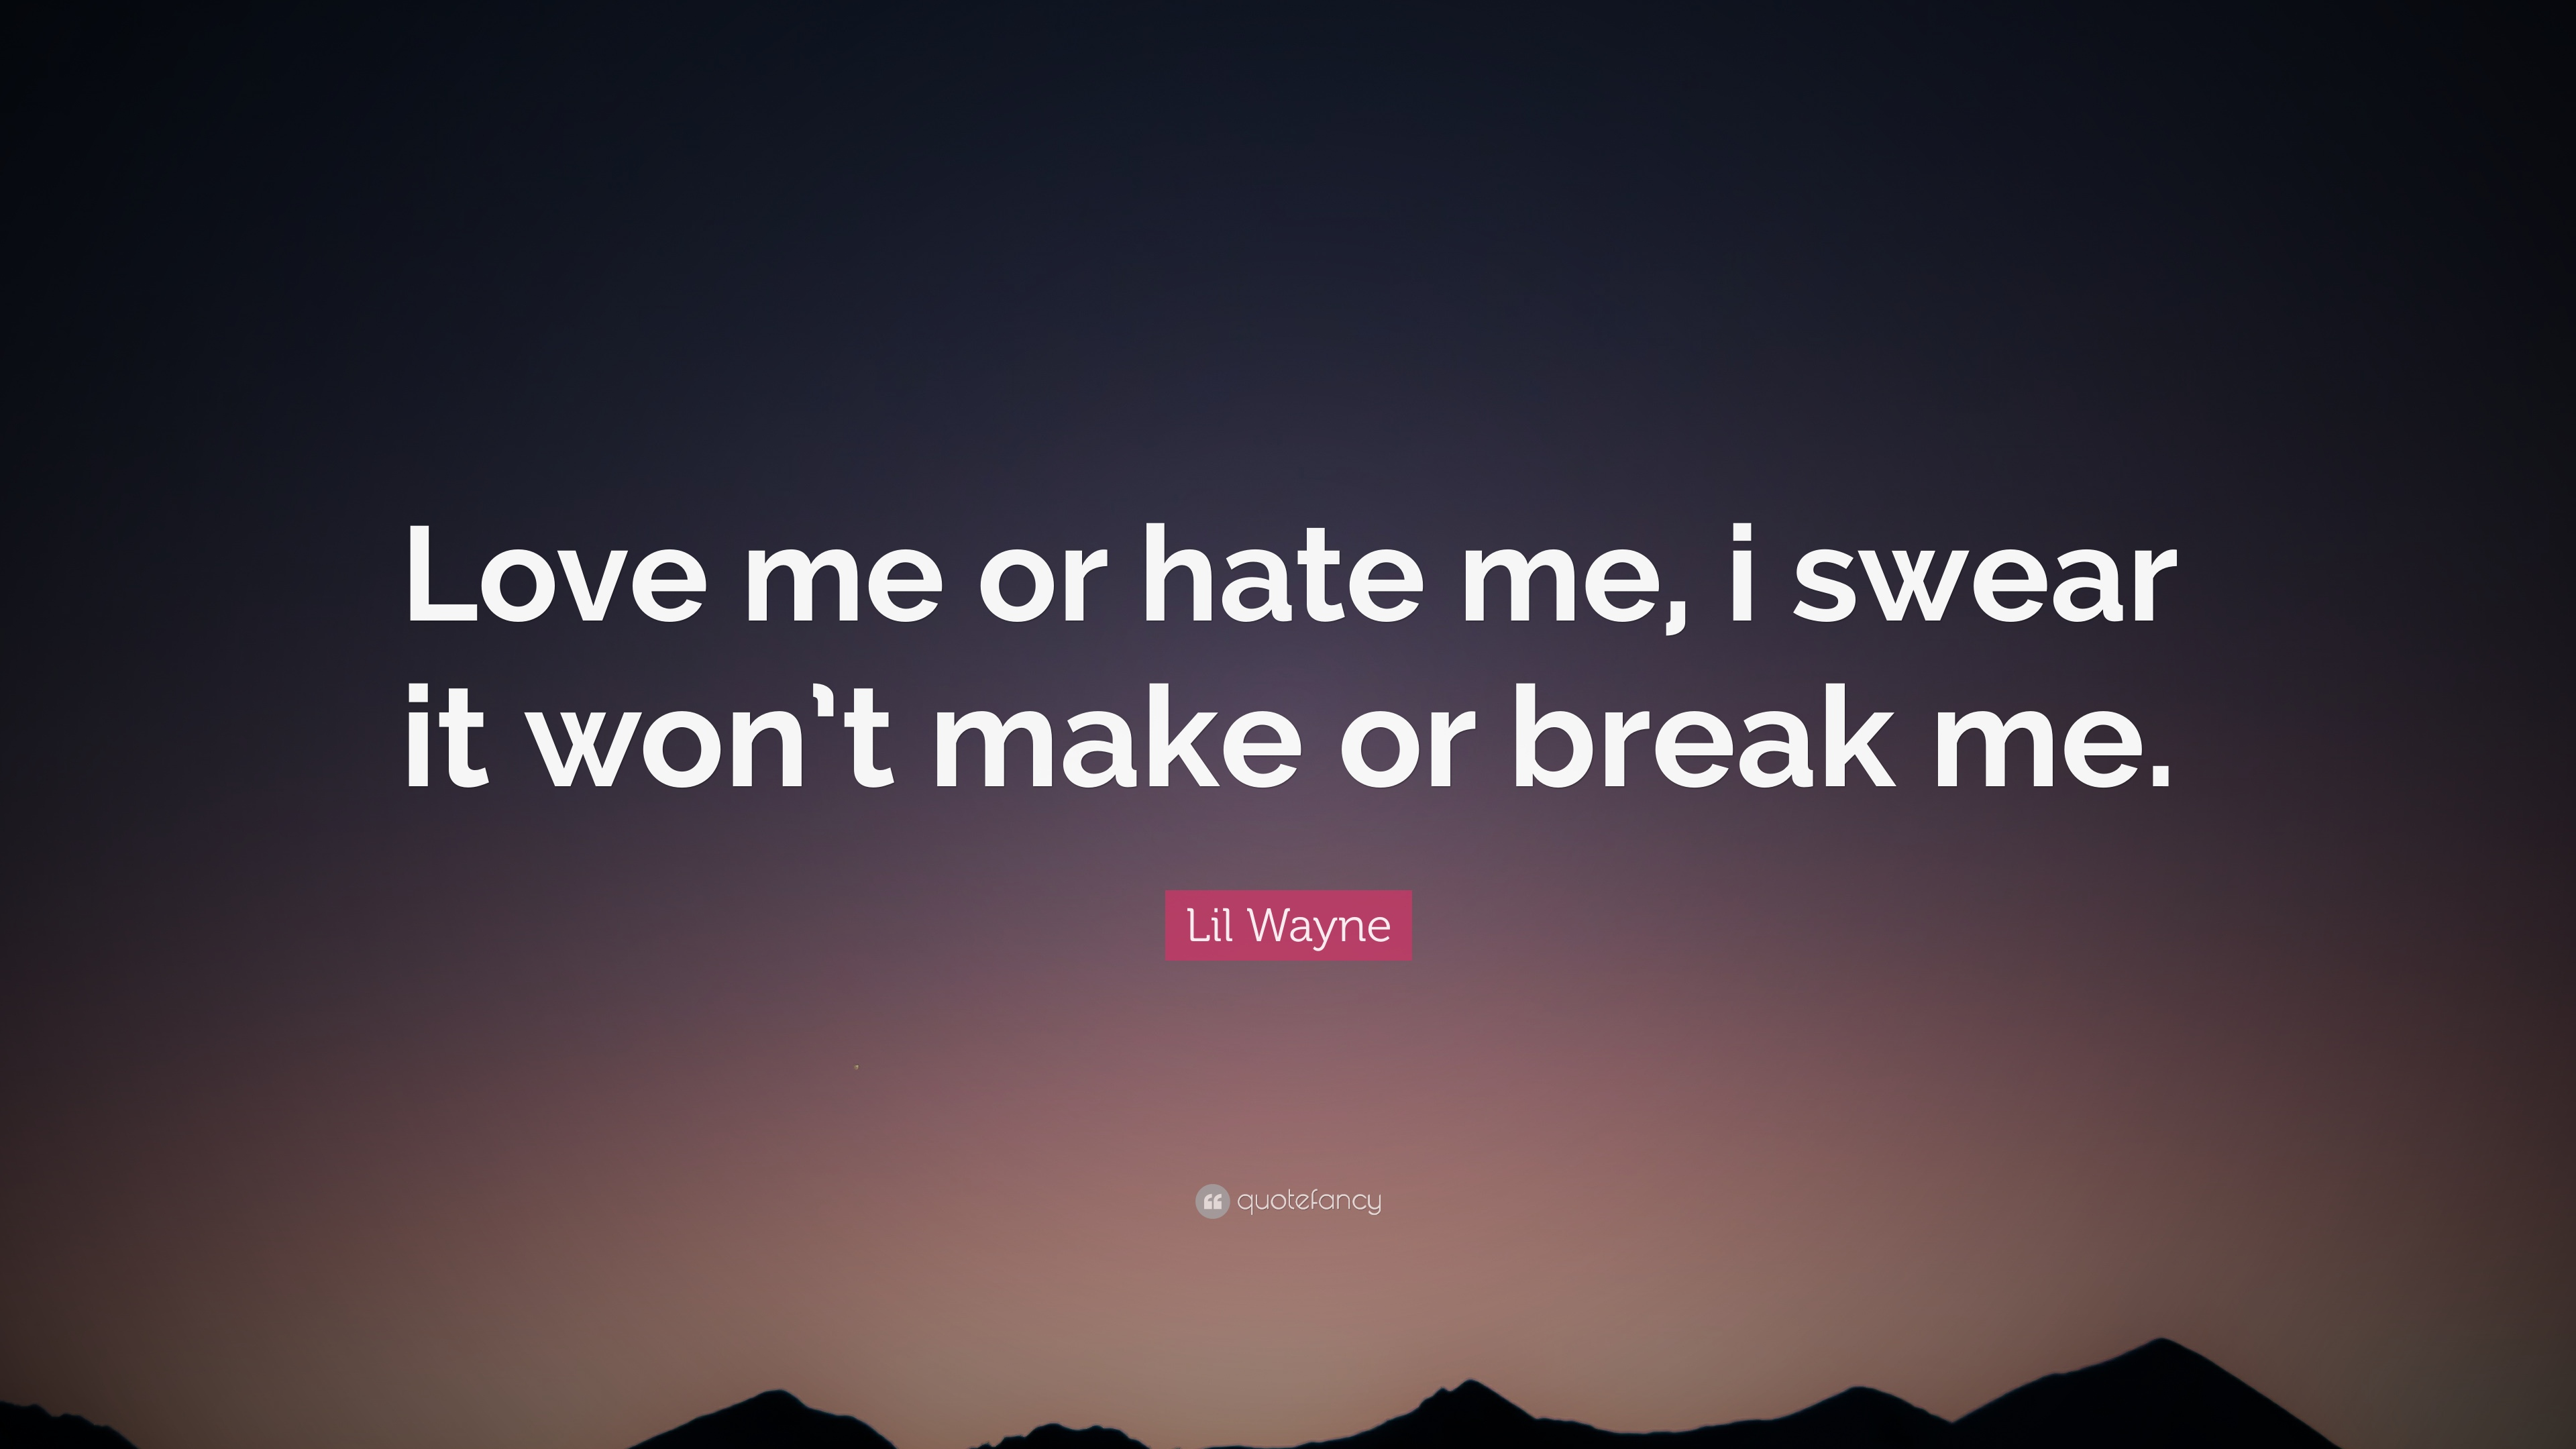 Love Me Or Hate Me Wallpaper For Mobile : Lil Wayne Quote: ?Love me or hate me, i swear it won t make or break me.? (12 wallpapers ...